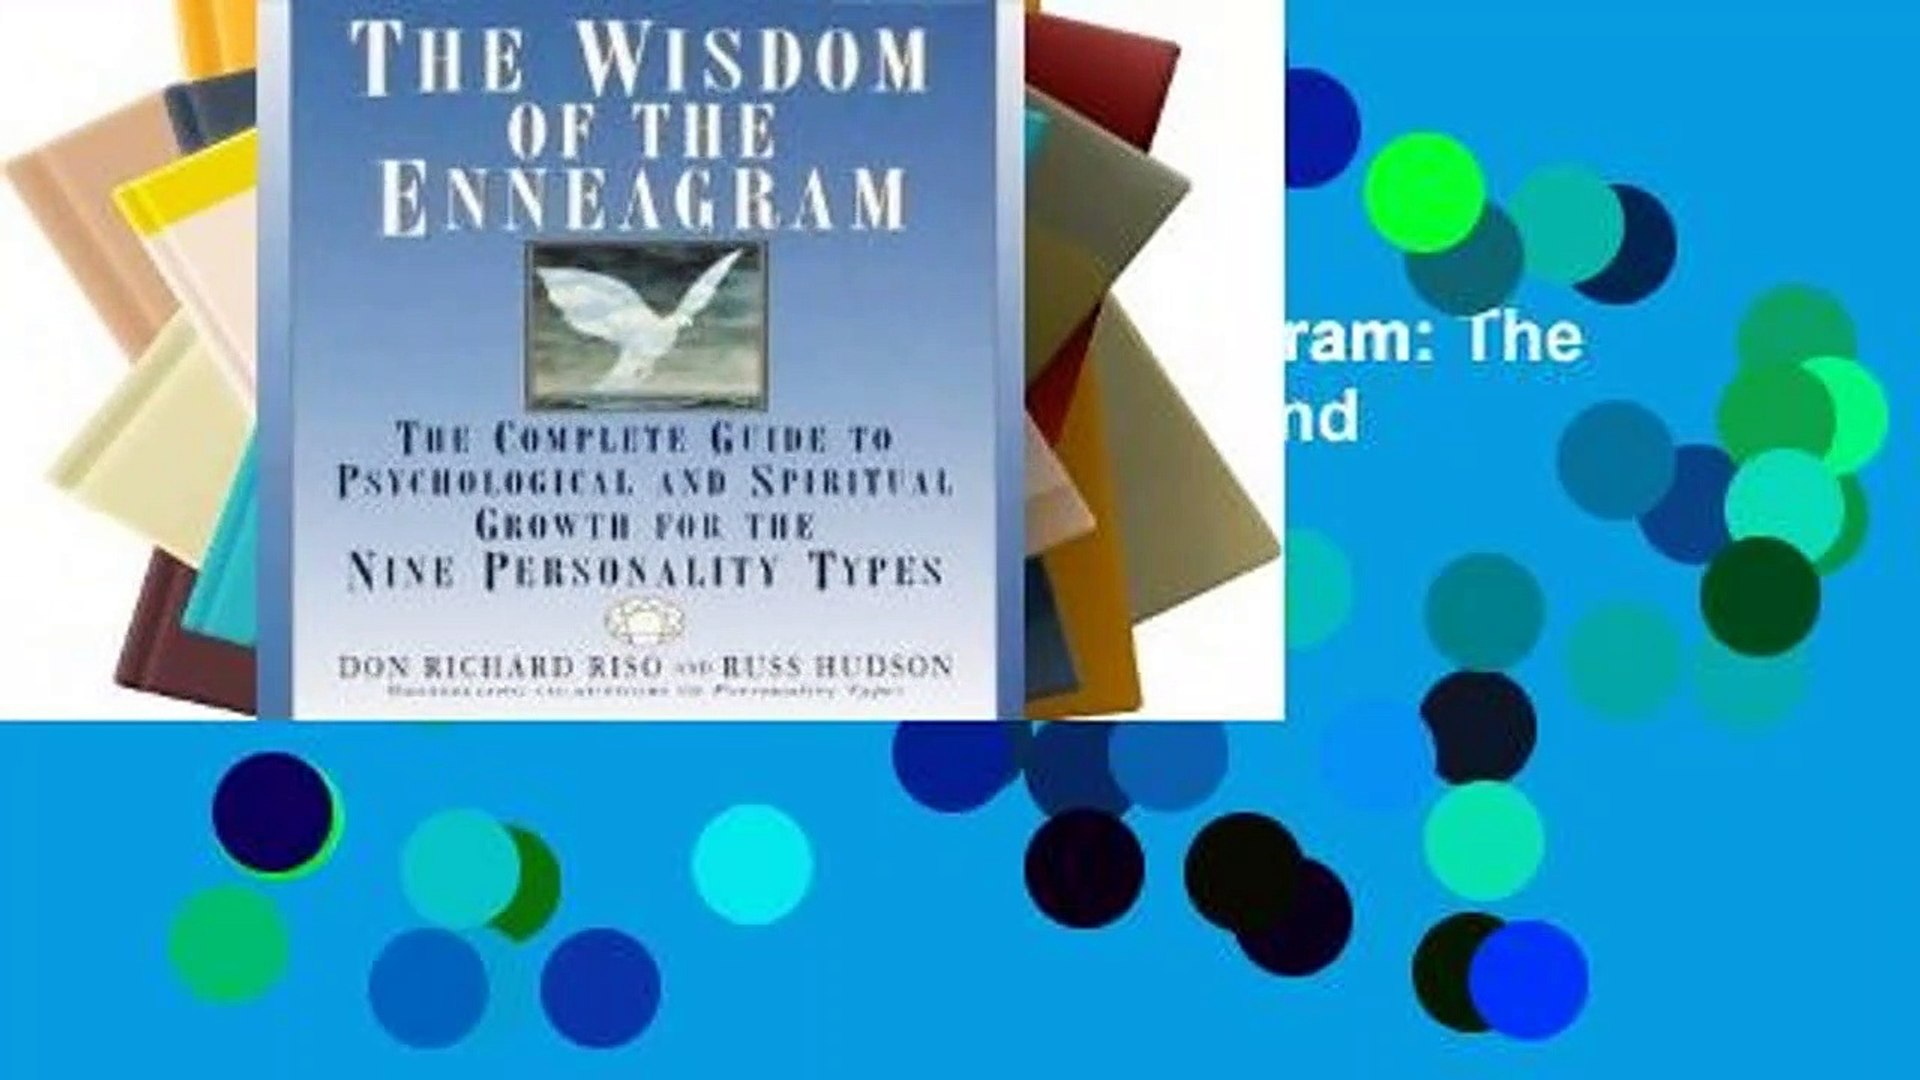 Review  The Wisdom of the Enneagram: The Complete Guide to Psychological and Spiritual Growth for